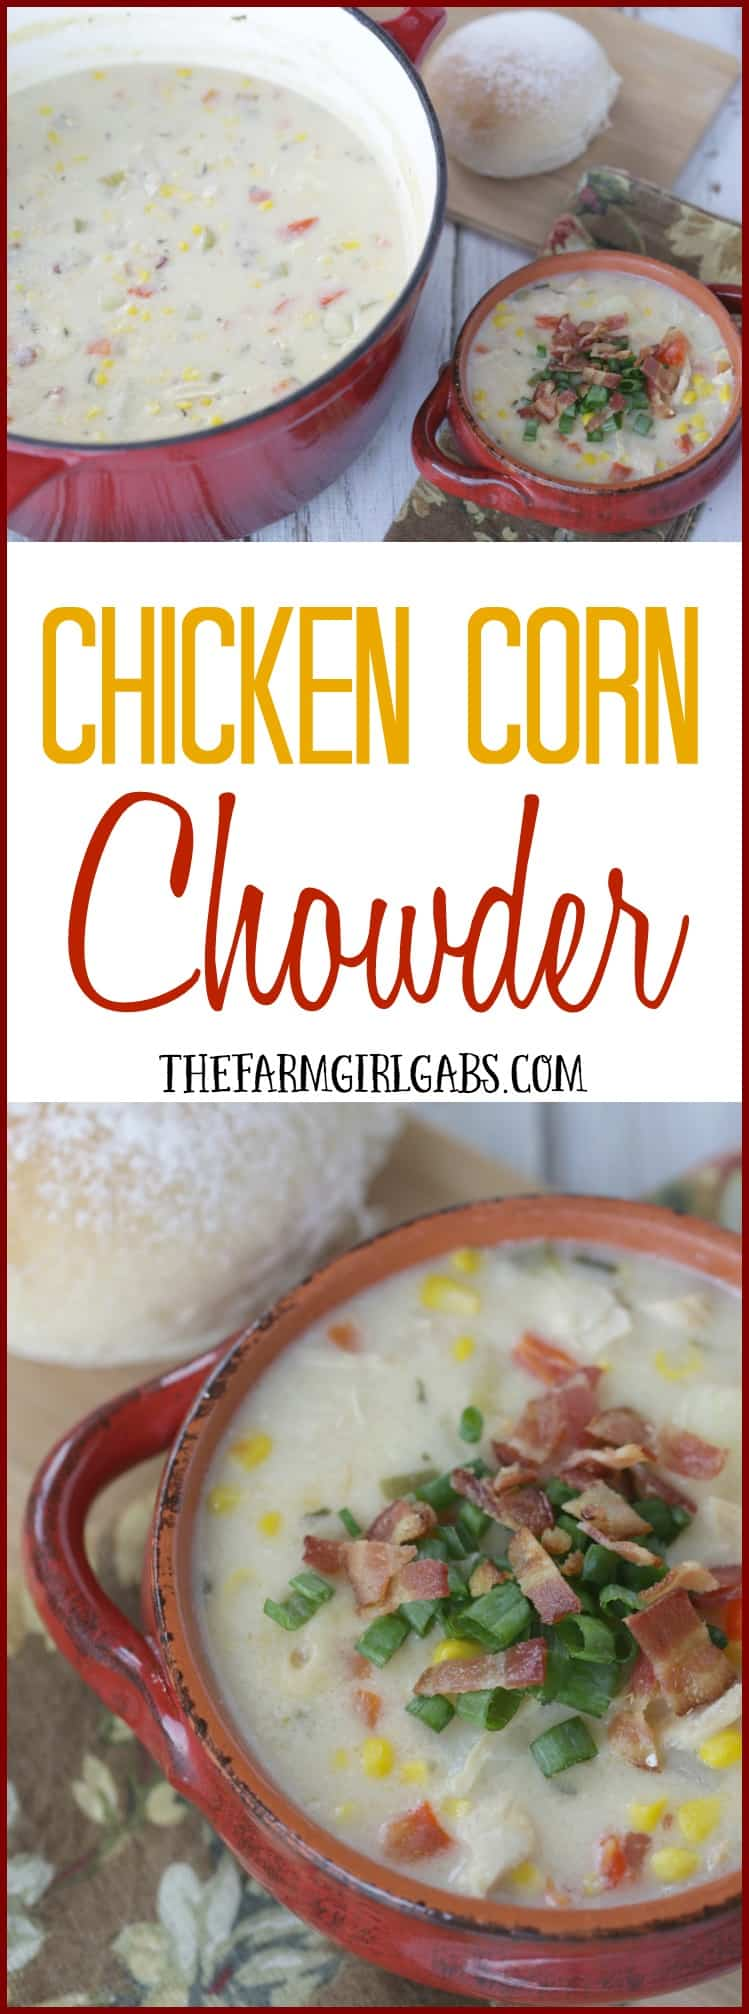 Warm up with a bowl of this hearty Chicken Corn Chowder. This recipe is so easy to make. There is nothing like a hot bowl of chowder to soothe your soul.